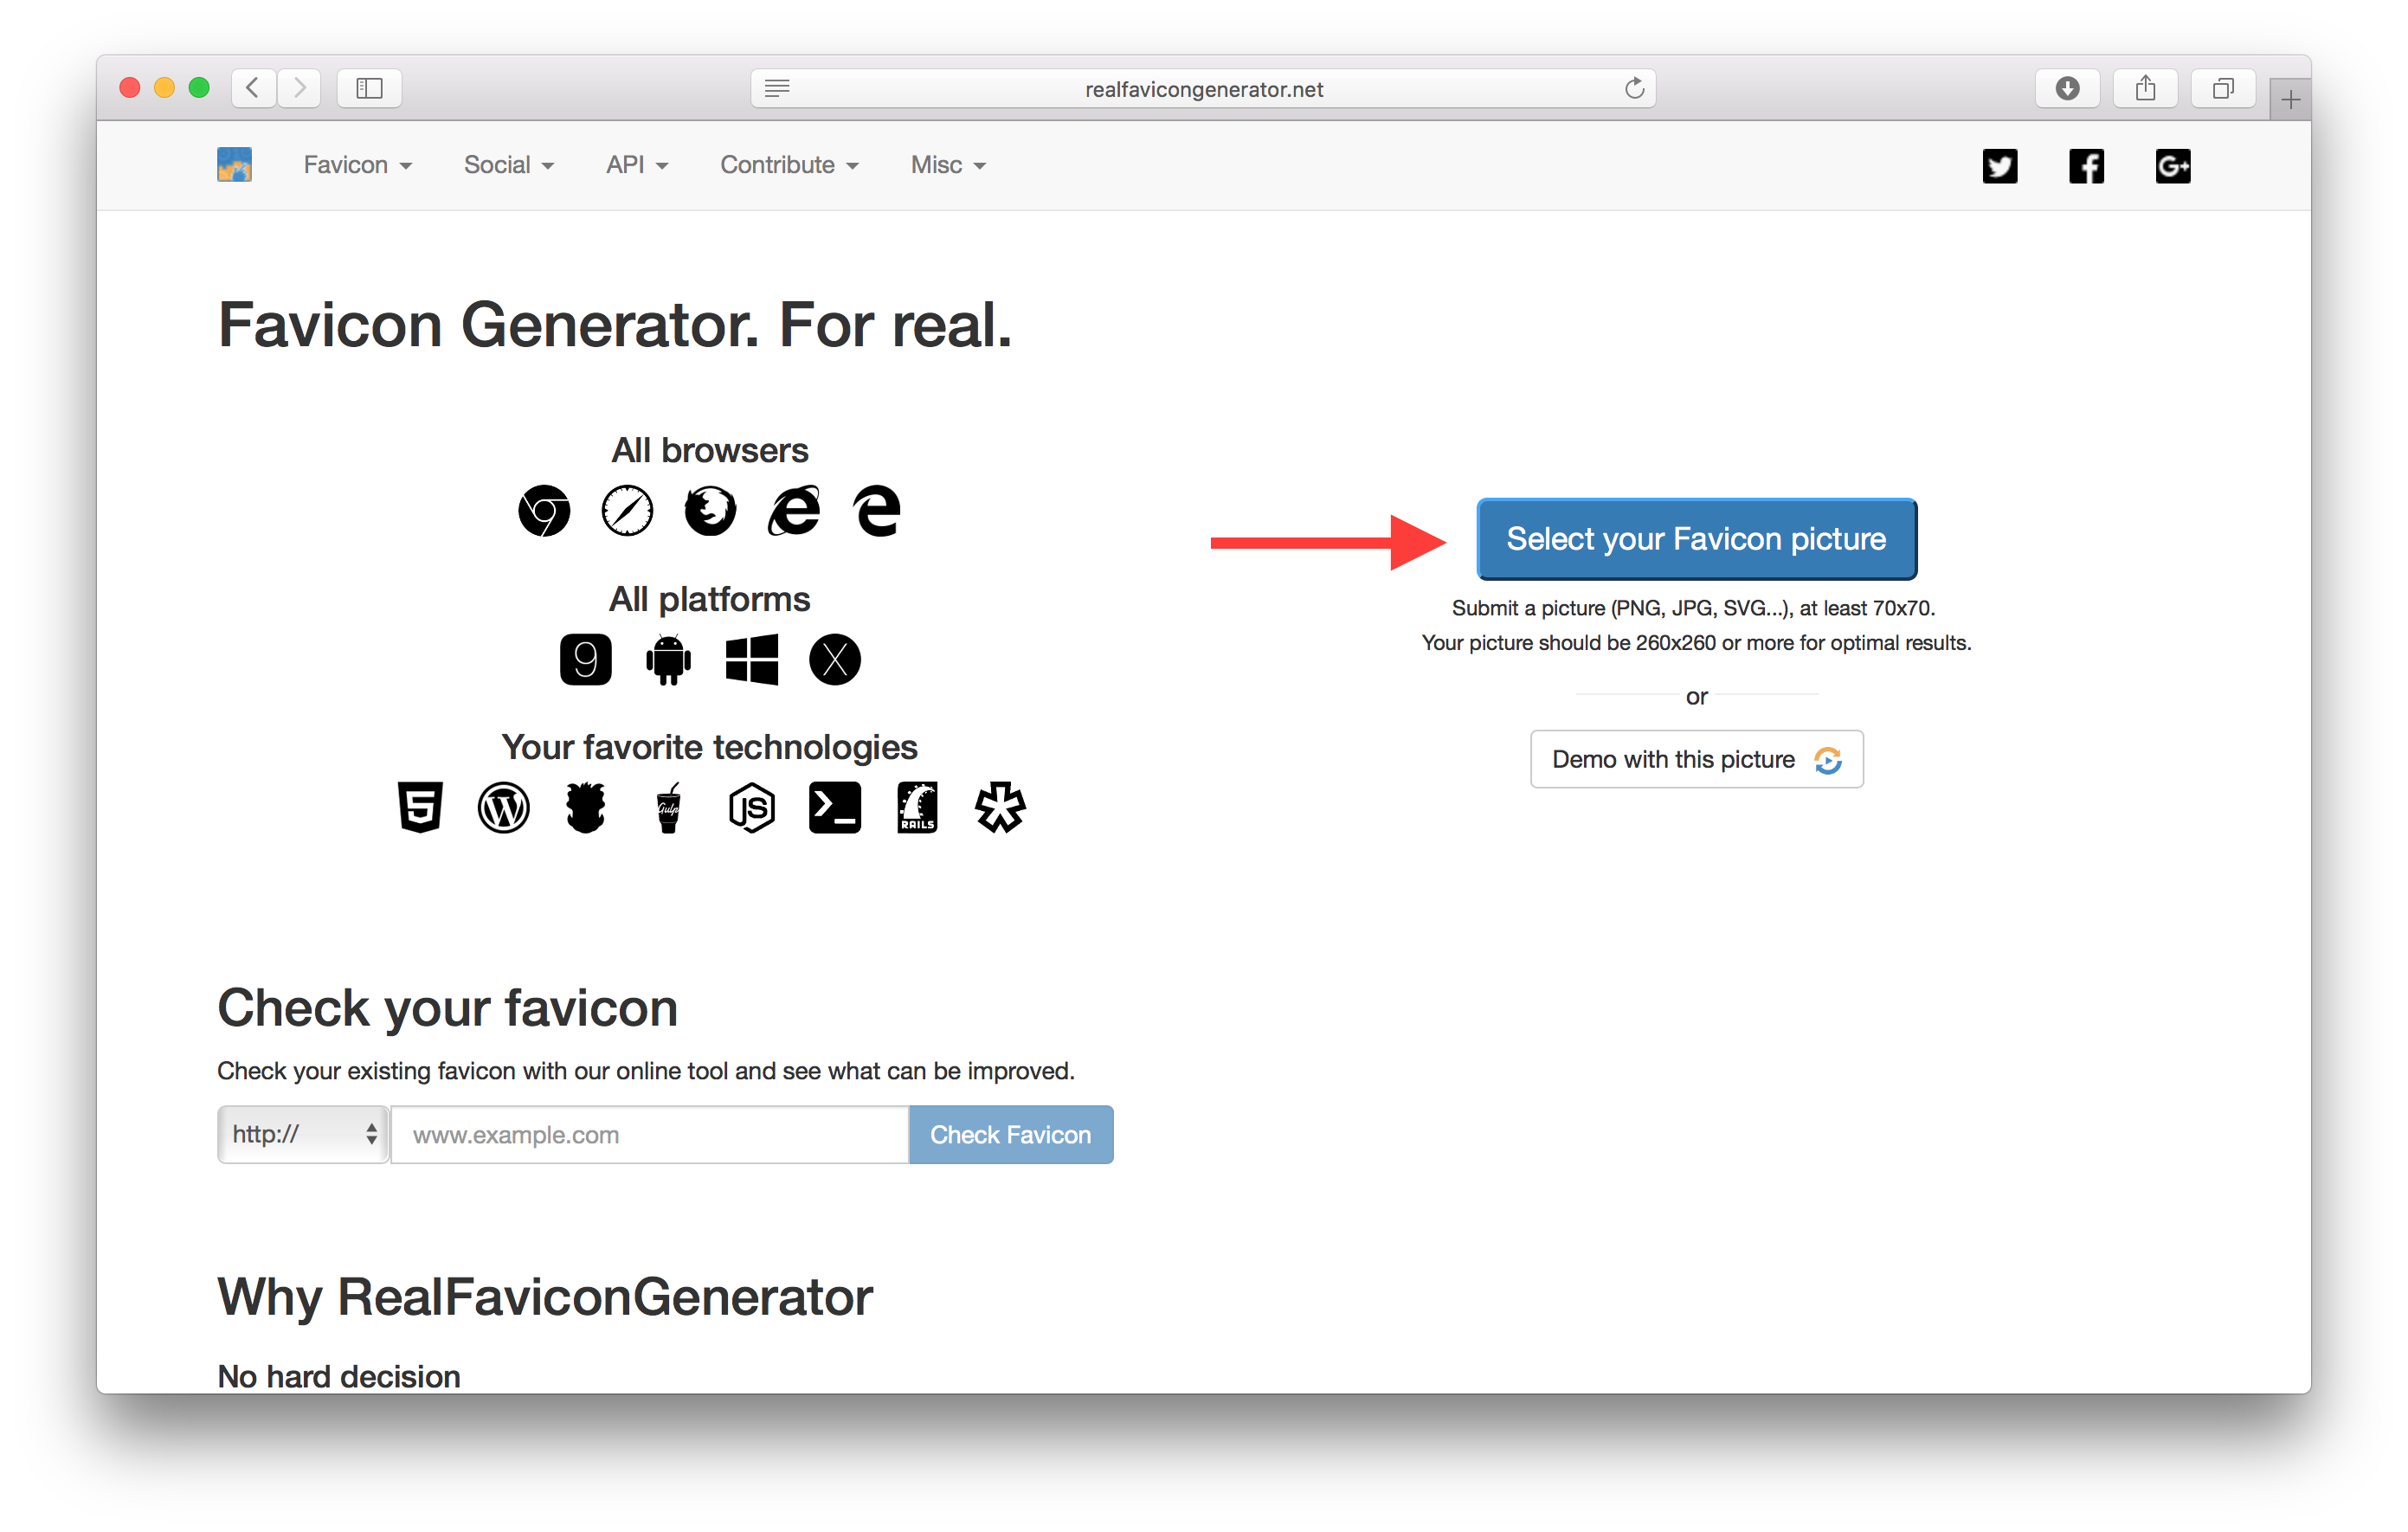 Realfavicongenerator.net screenshot